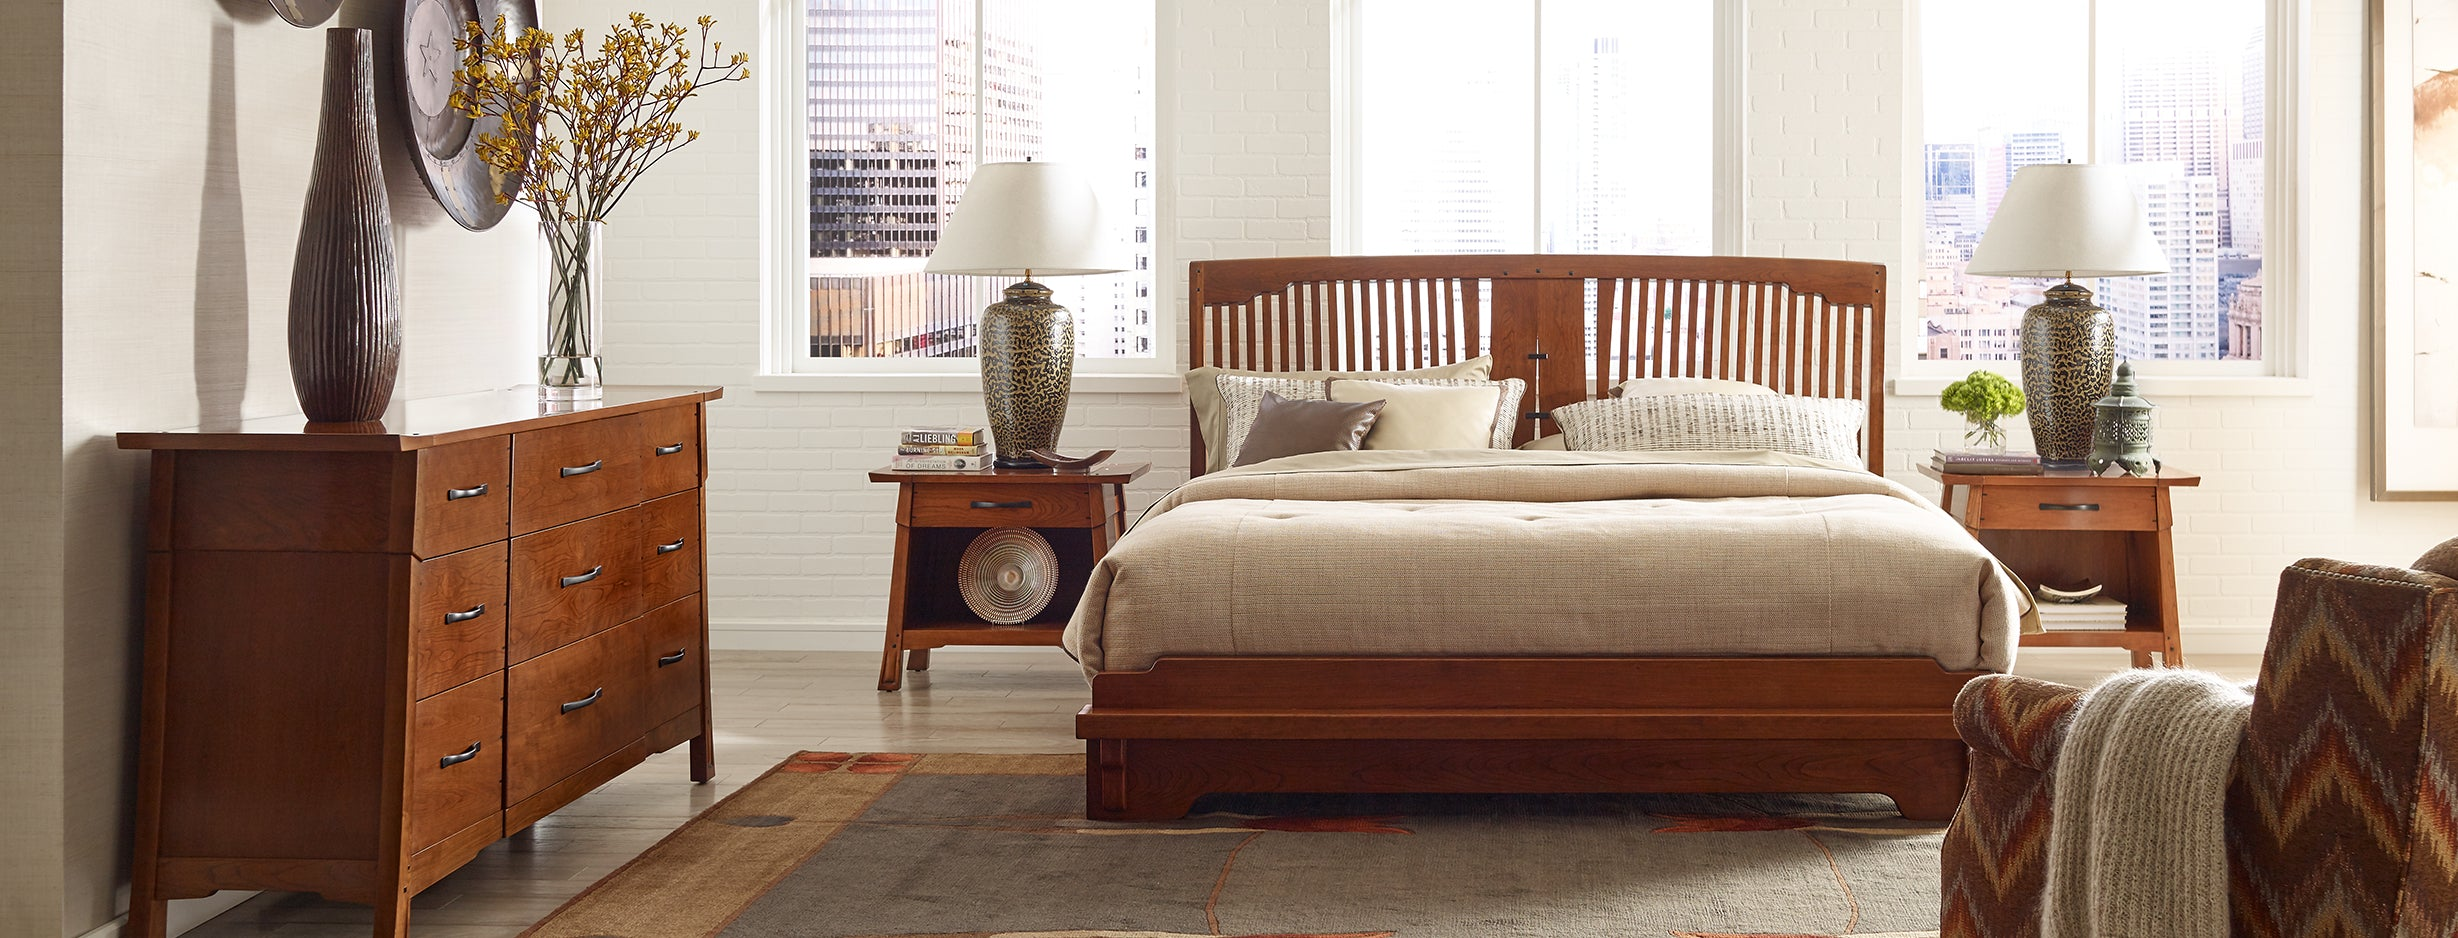 Pasadena Bungalow by Stickley Collection Banner Image